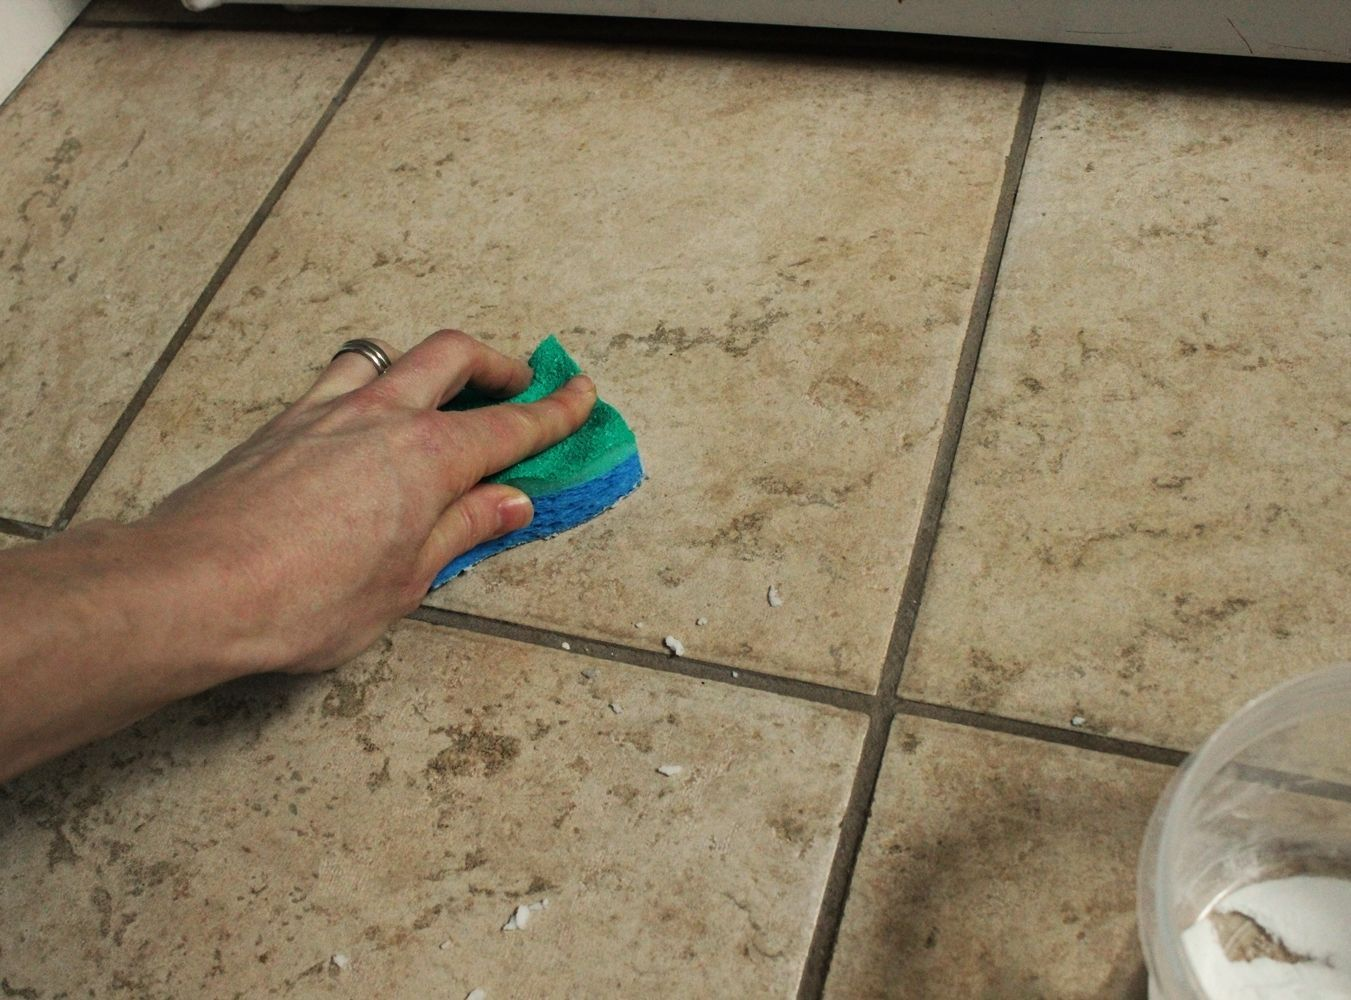 How to clean floor tile grout naturally flooring ideas and inspiration diy natural tile or grout cleaner dailygadgetfo Choice Image